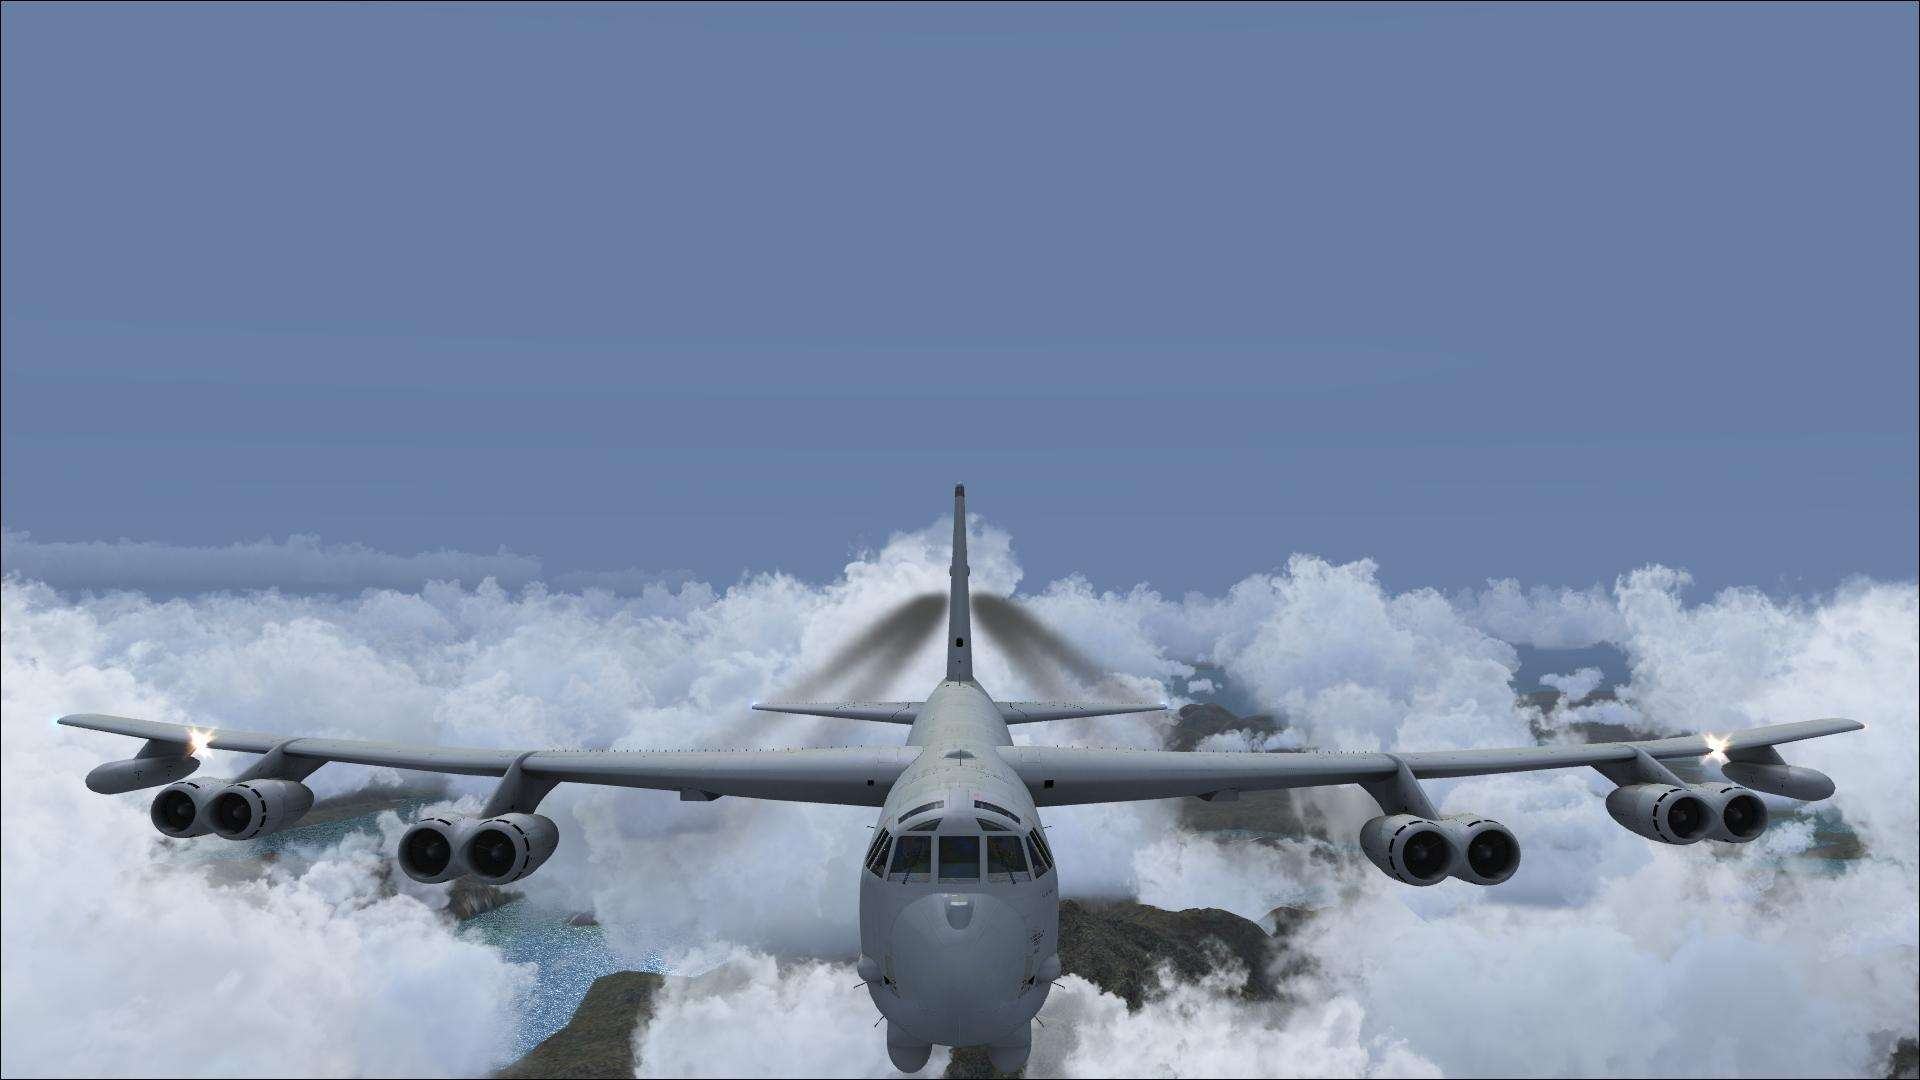 View Of Fsx Wallpaper Hd Wallpapers 1920x1080